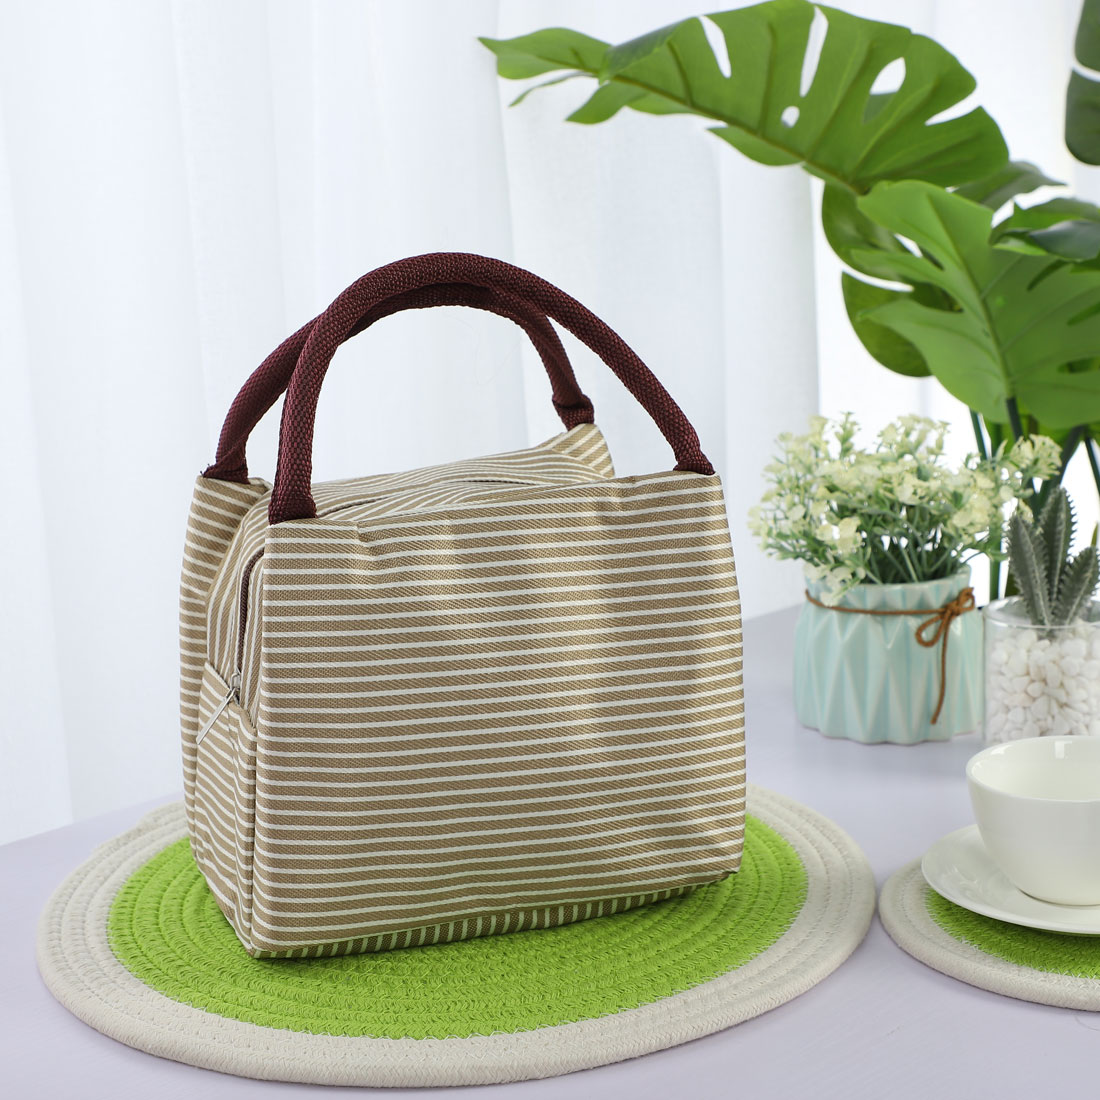 Lunch Bag Warmer Cooler Travel Food Box Tote Carry Insulated Bags Khaki+White - image 1 de 7